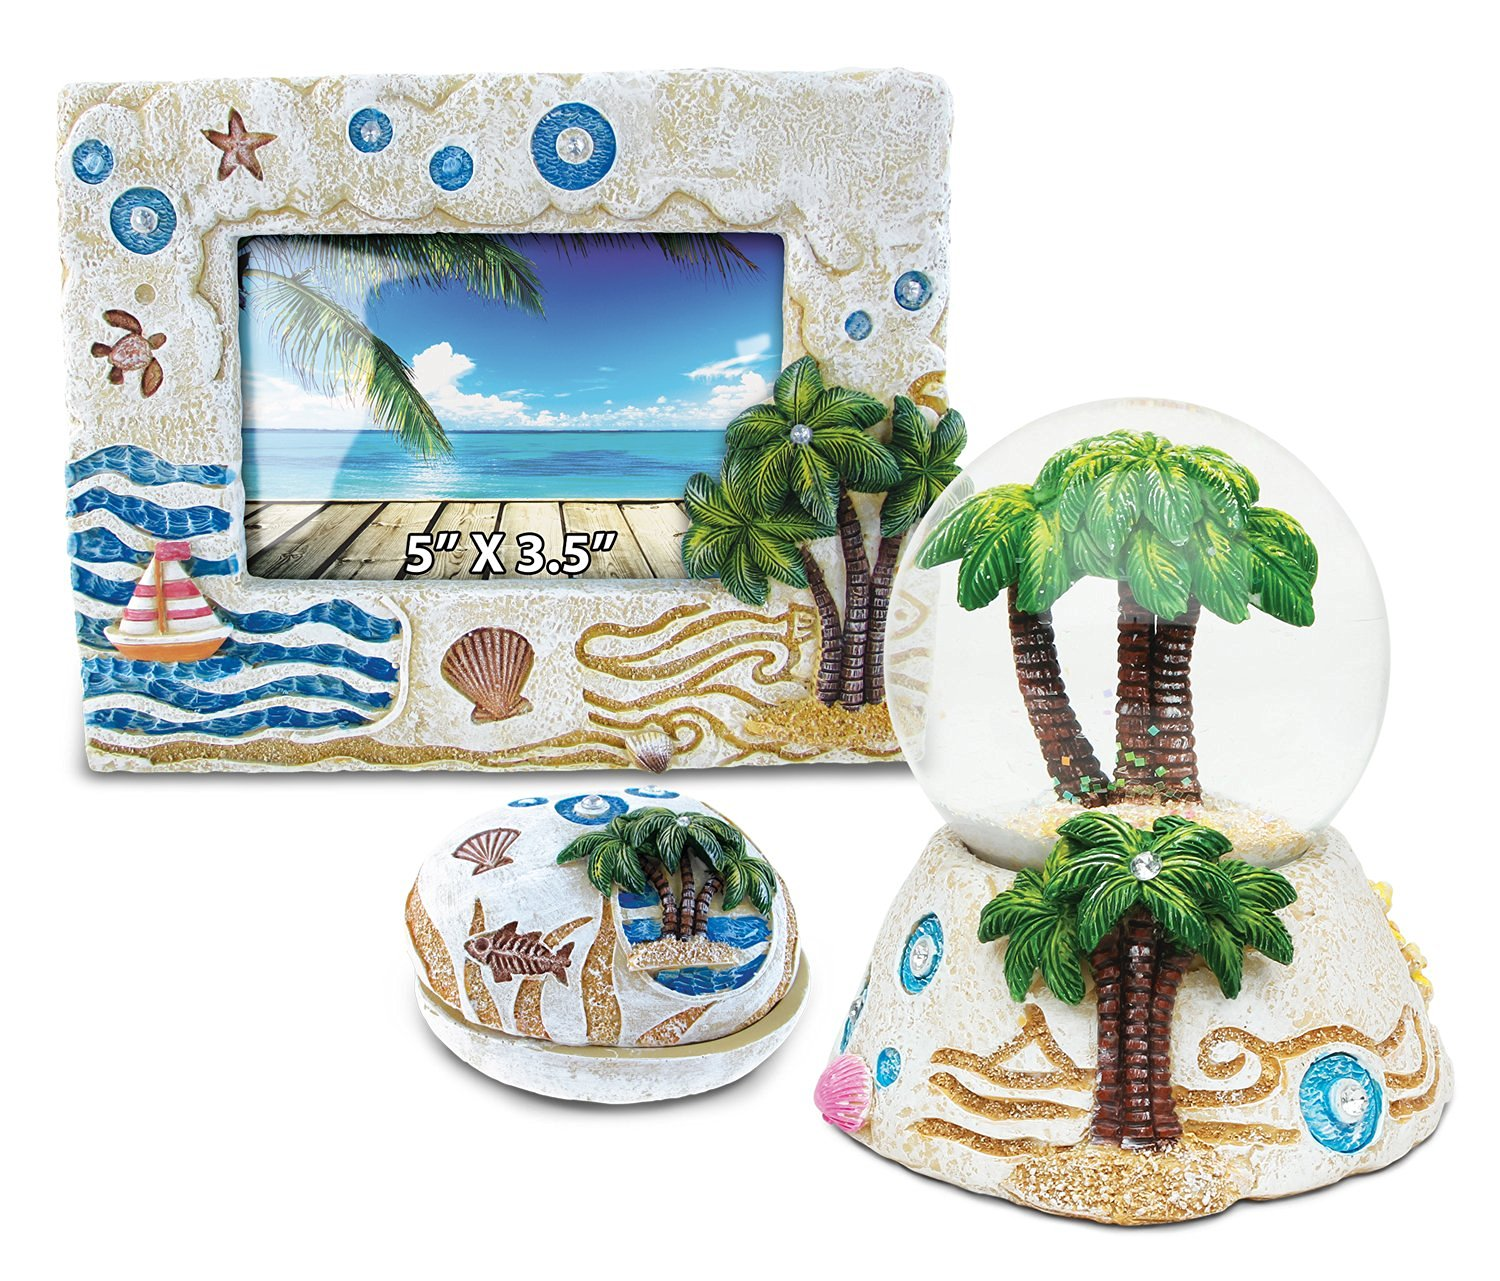 Puzzled Palm Tree Resin Stone Finish Collection including Picture/Photo Frame, Jewelry Box , and Snow Globe - Picture Size 5 by 3 - Unique Elegant Gift and Souvenir